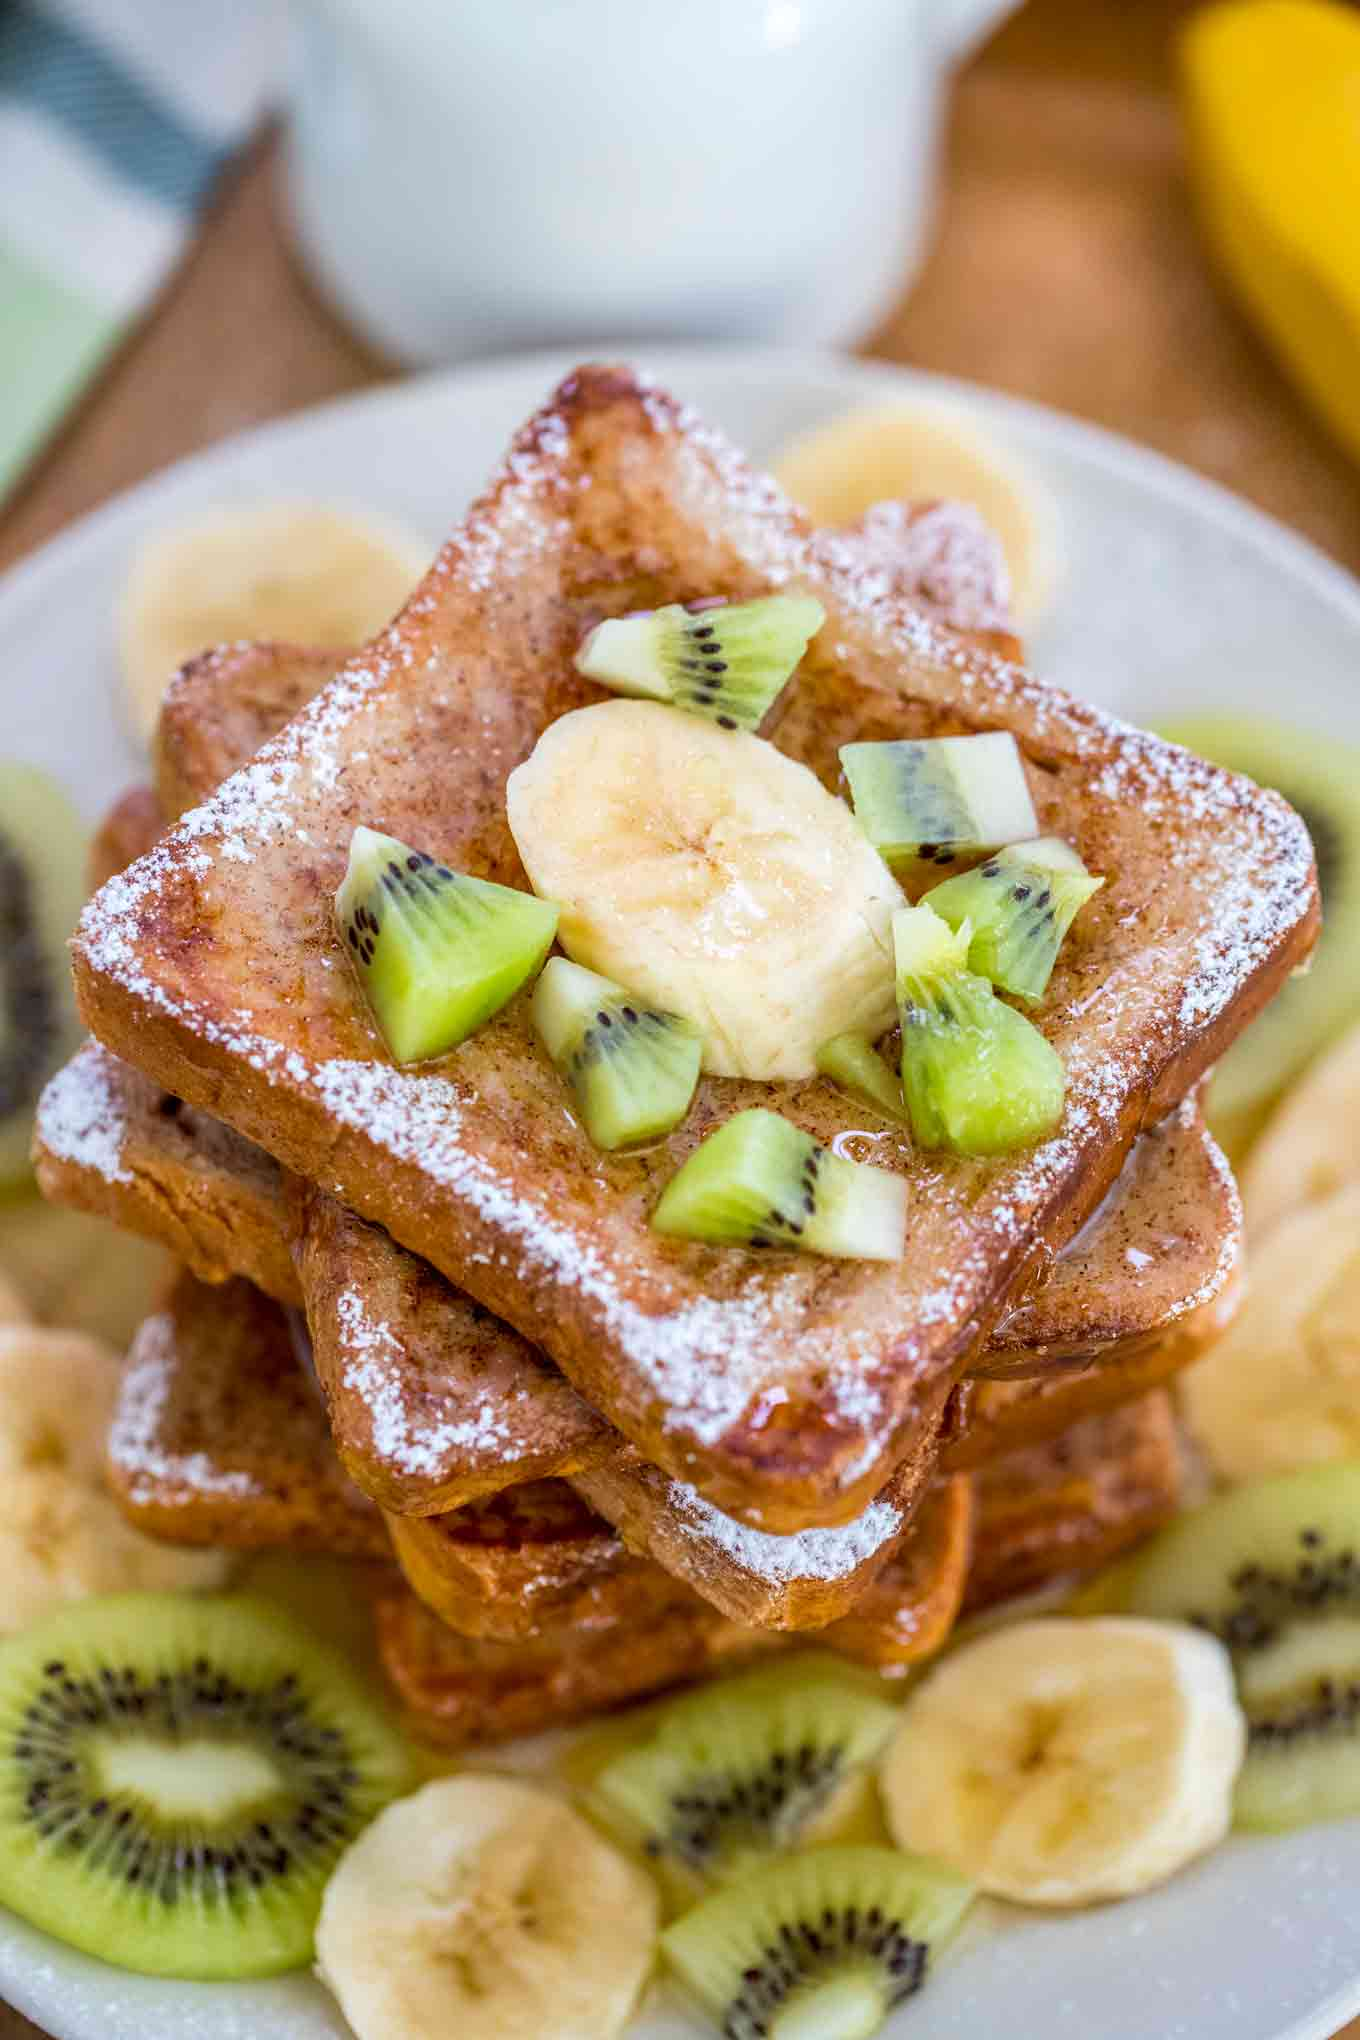 Best Vegan French Toast Sweet And Savory Meals